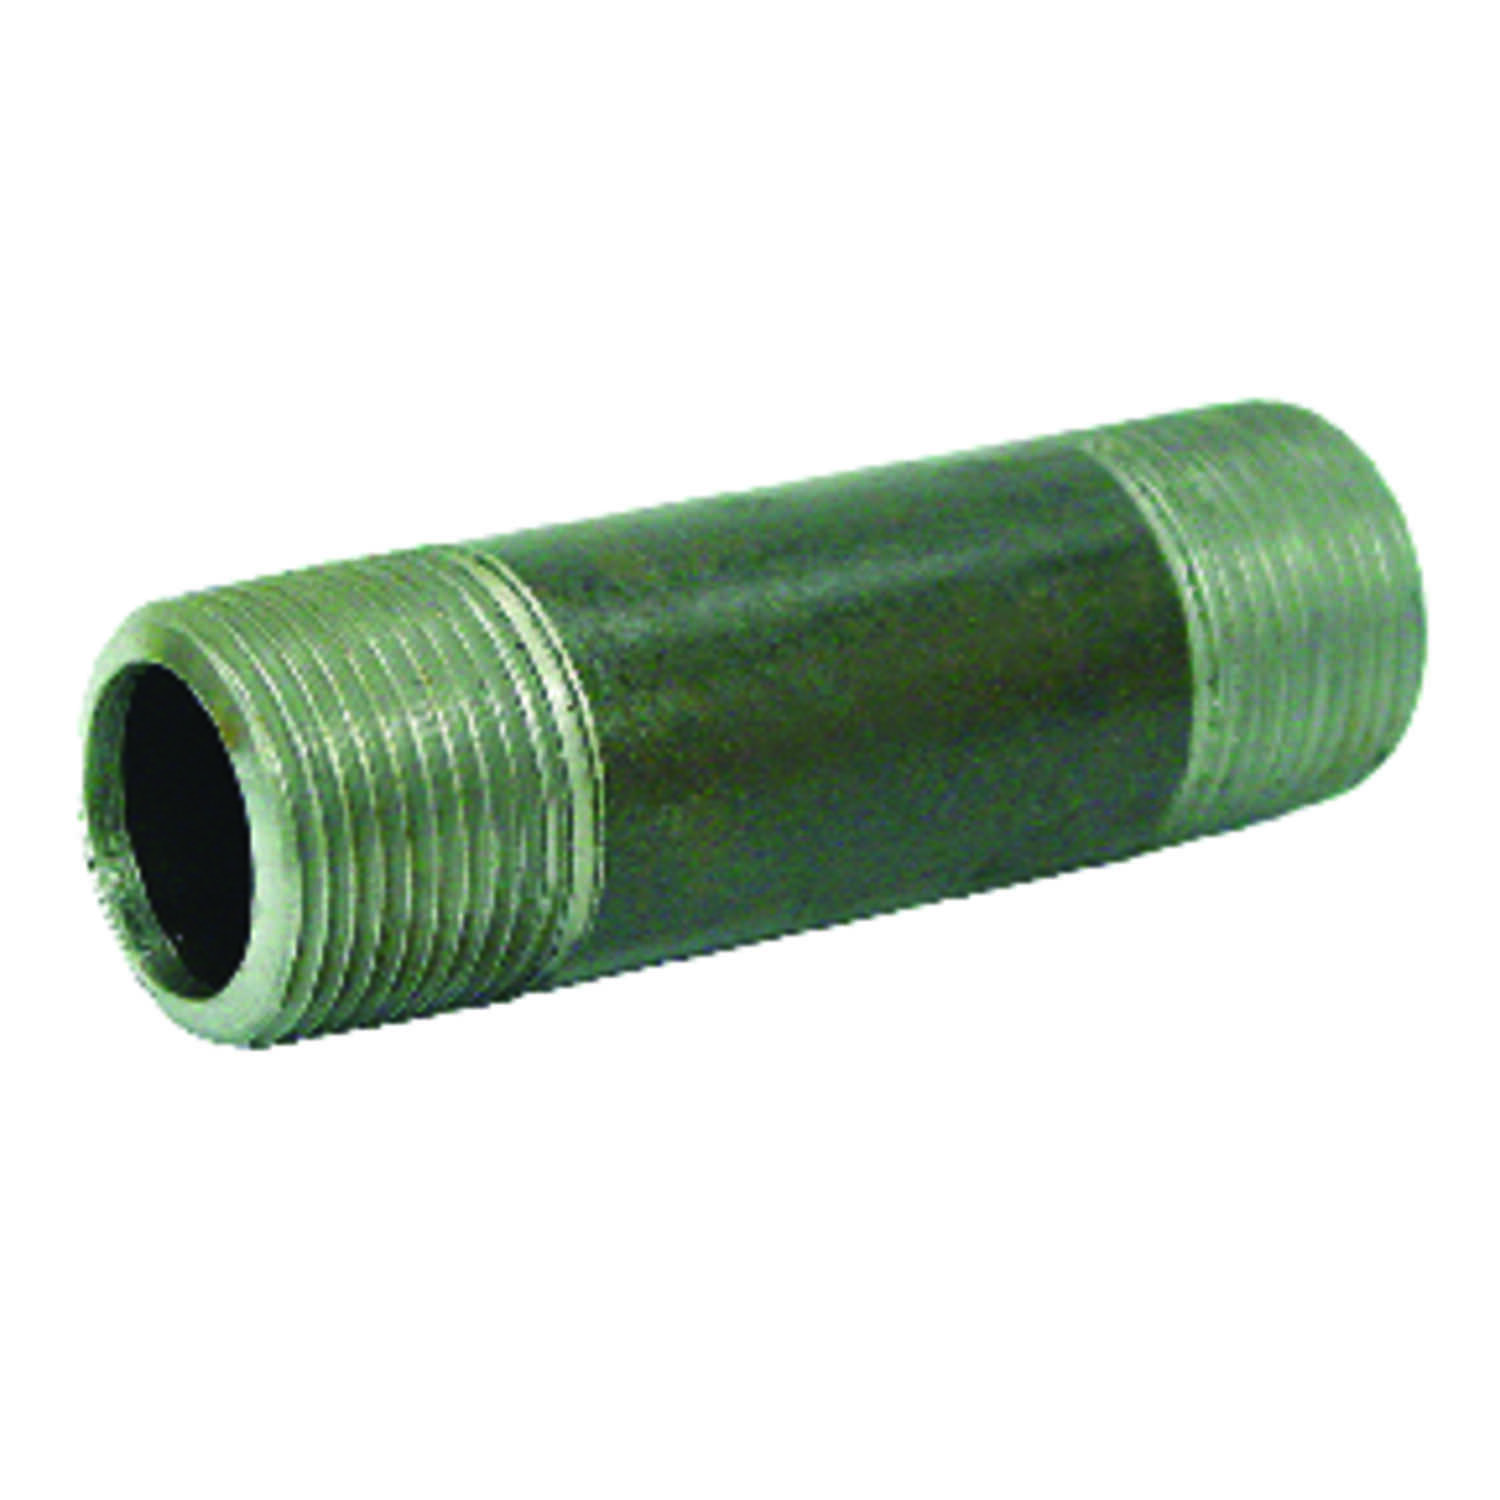 Anvil  Beck  1-1/2 in. MPT   x 1-1/2 in. Dia. x 1-3/4 in. L MPT  Galvanized  Steel  Pipe Nipple